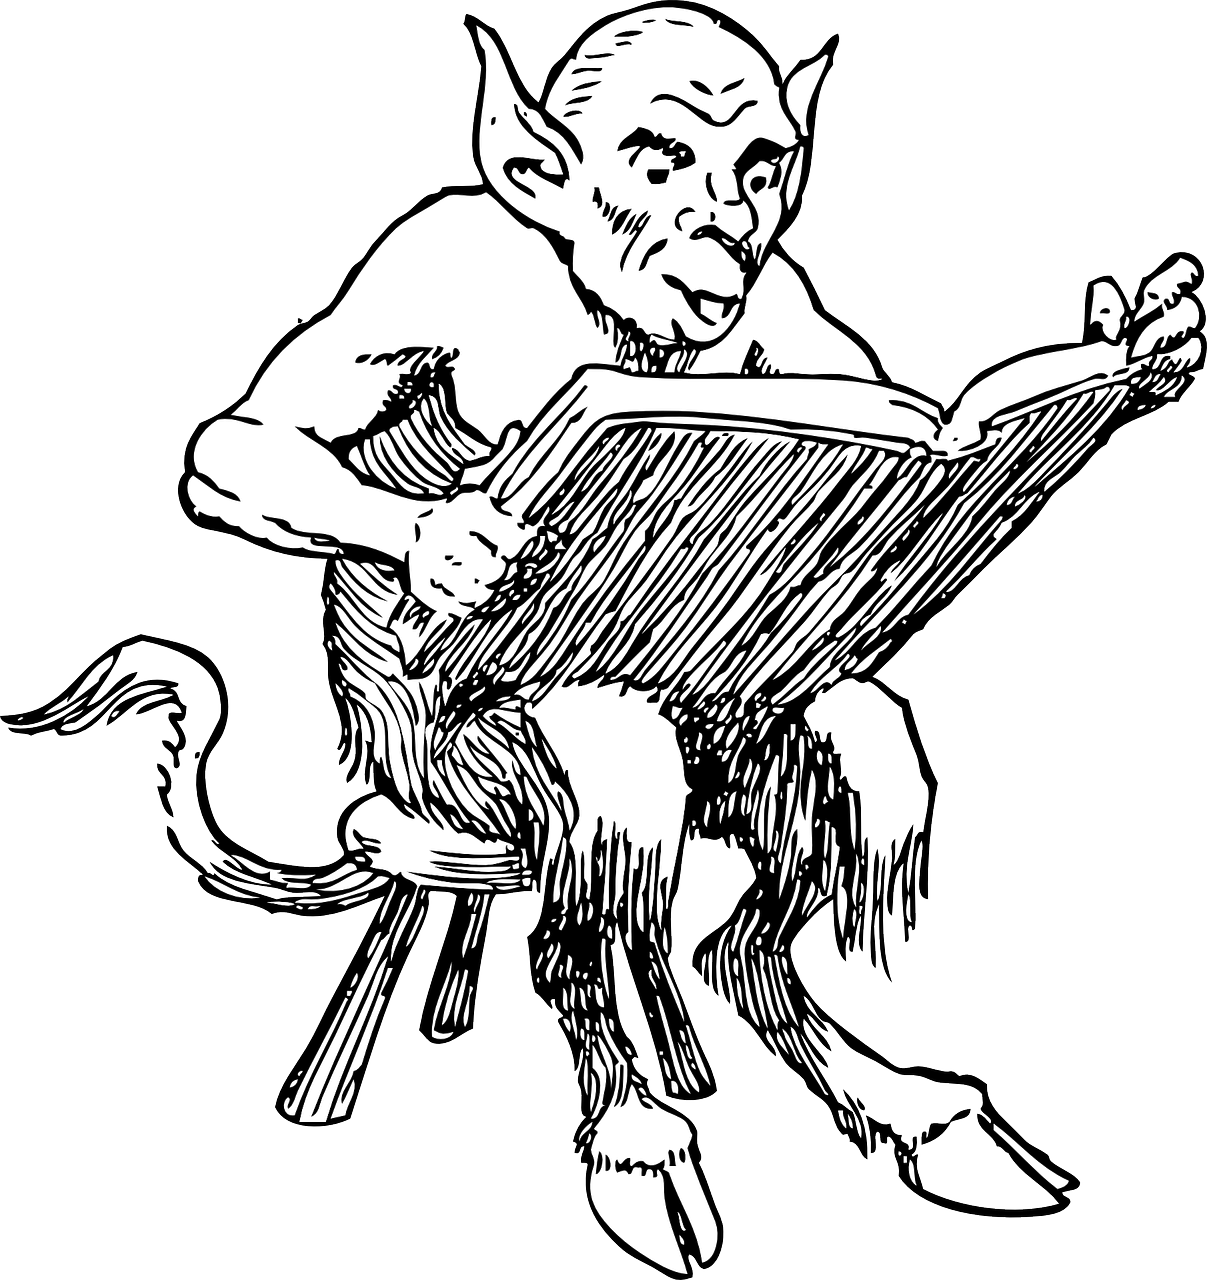 Separation of church and state, including Satan\'s coloring book